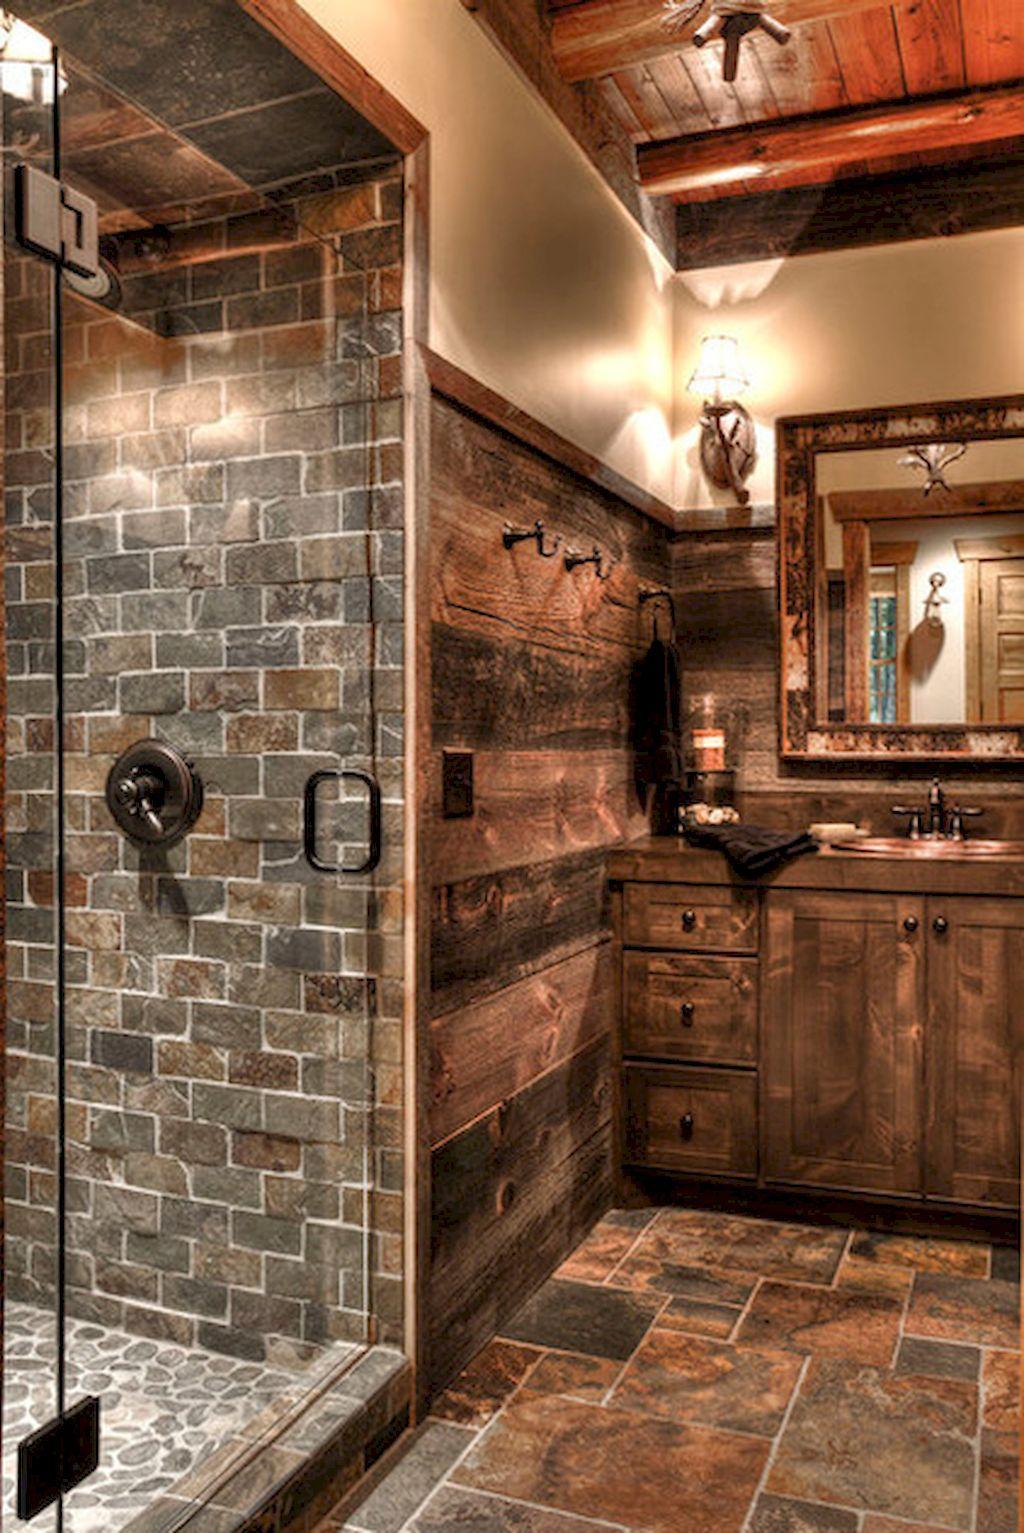 40 Inspiring Rustic Master Bathroom Design Decor Ideas Homevialand Com Rustic Bathrooms Rustic House Rustic Bathroom Designs